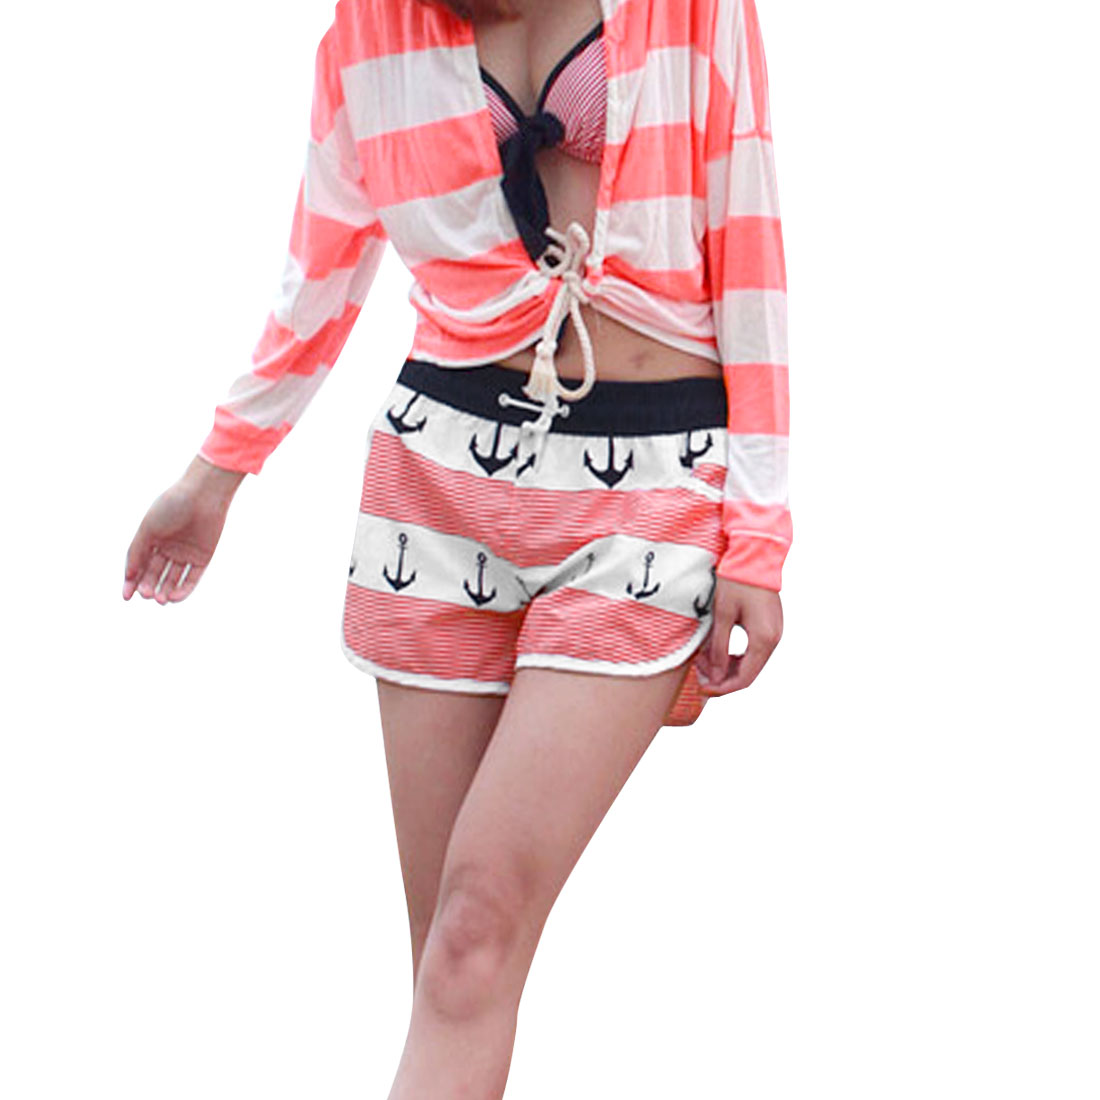 Lady Elastic Waist Slant Side Pockets Anchor Stripes Pattern Shorts Red White S